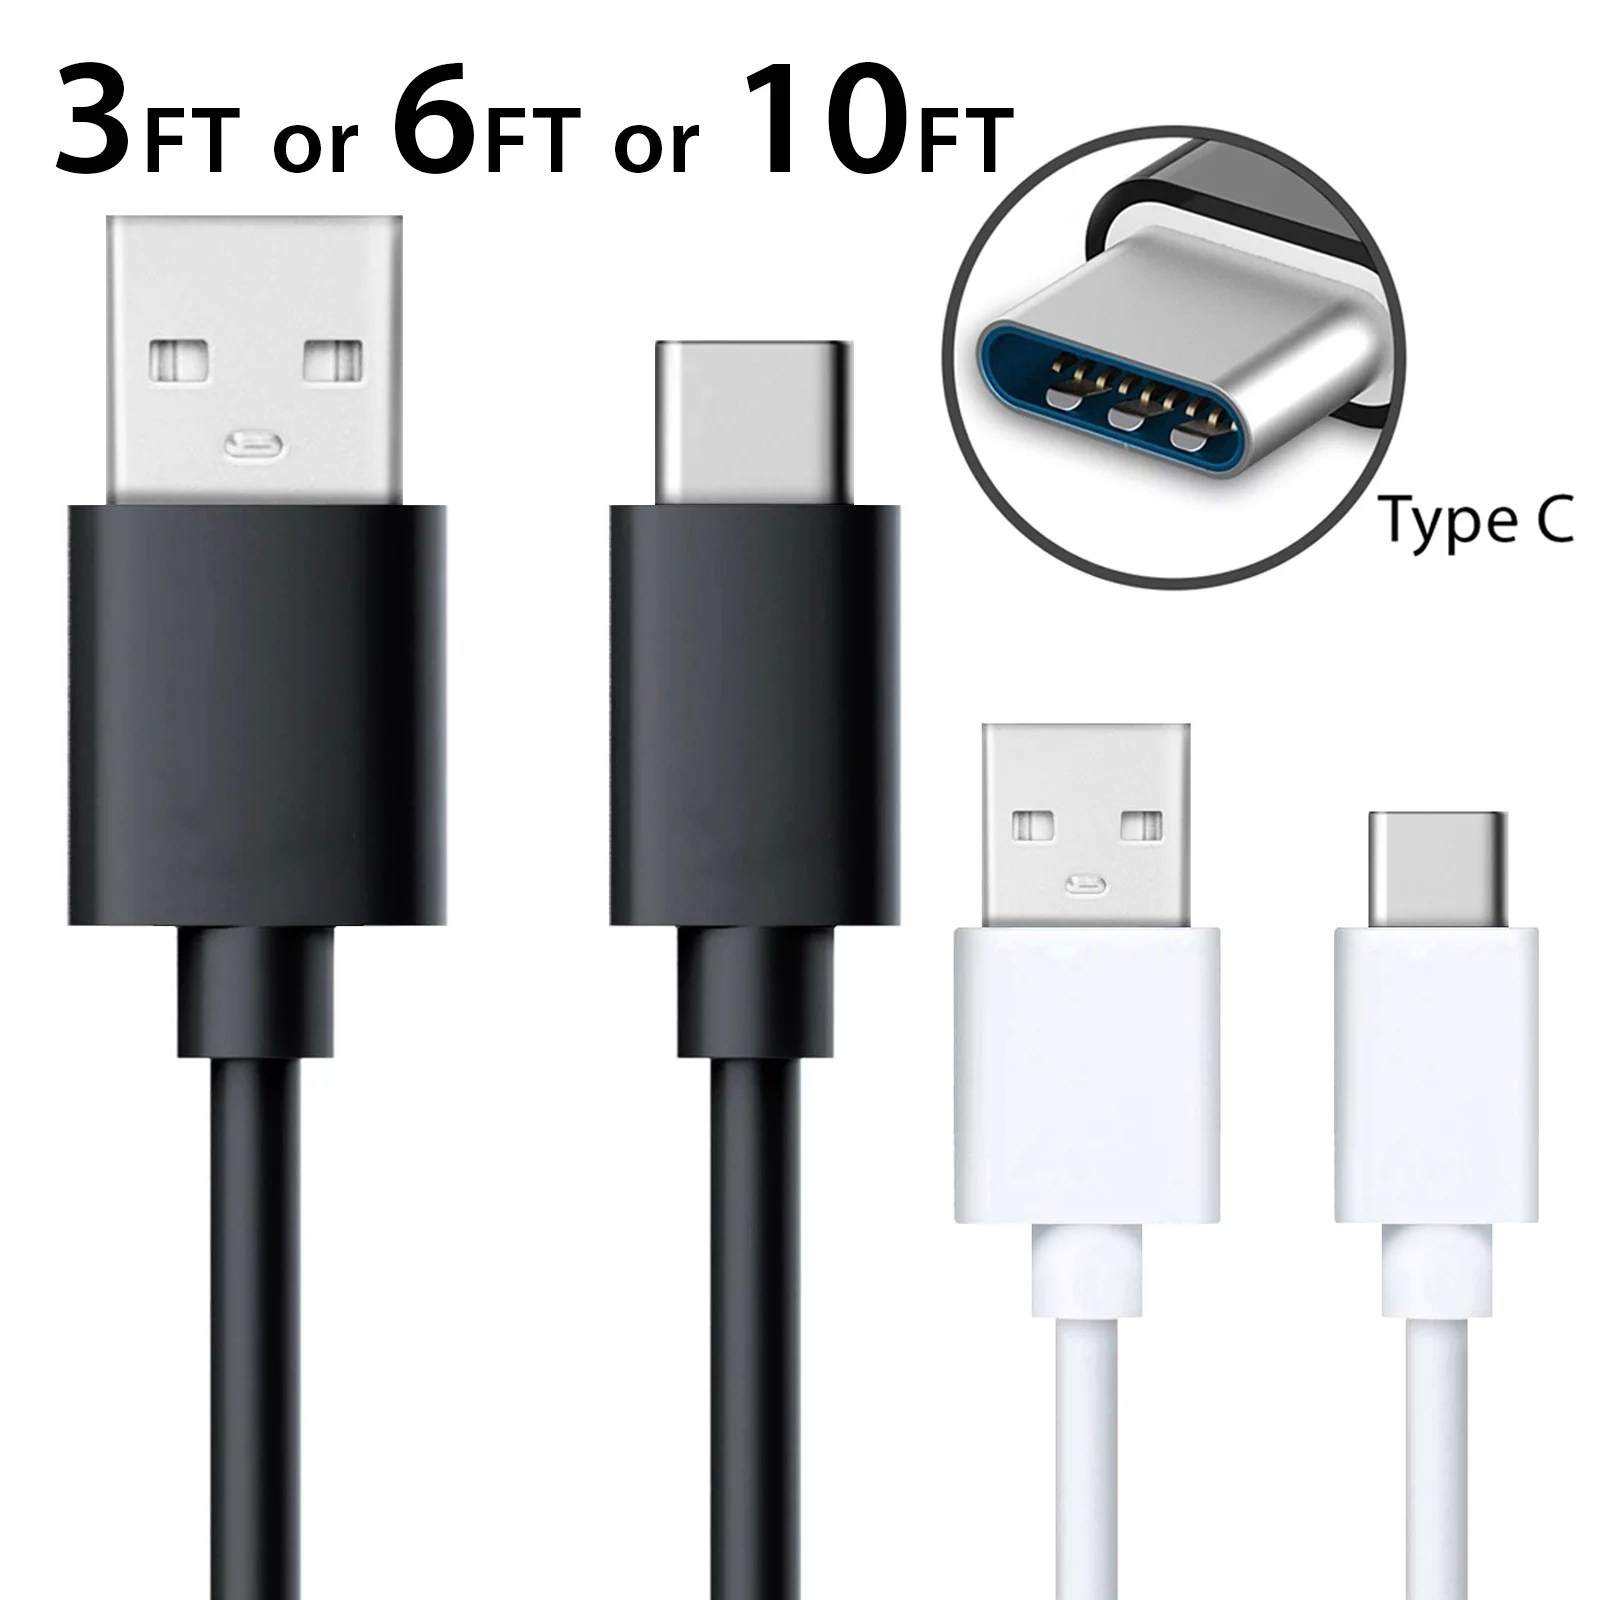 Afflux USB Type C Fast Charging Cable 10FT USB-C Type-C 3.1 Data Sync Charger Cable Cord For Samsung Galaxy S8 S8+ Note 8 Nexus 5X 6P OnePlus 2 3 5 LG G5 G6 V20 HTC 10 Google Pixel XL White